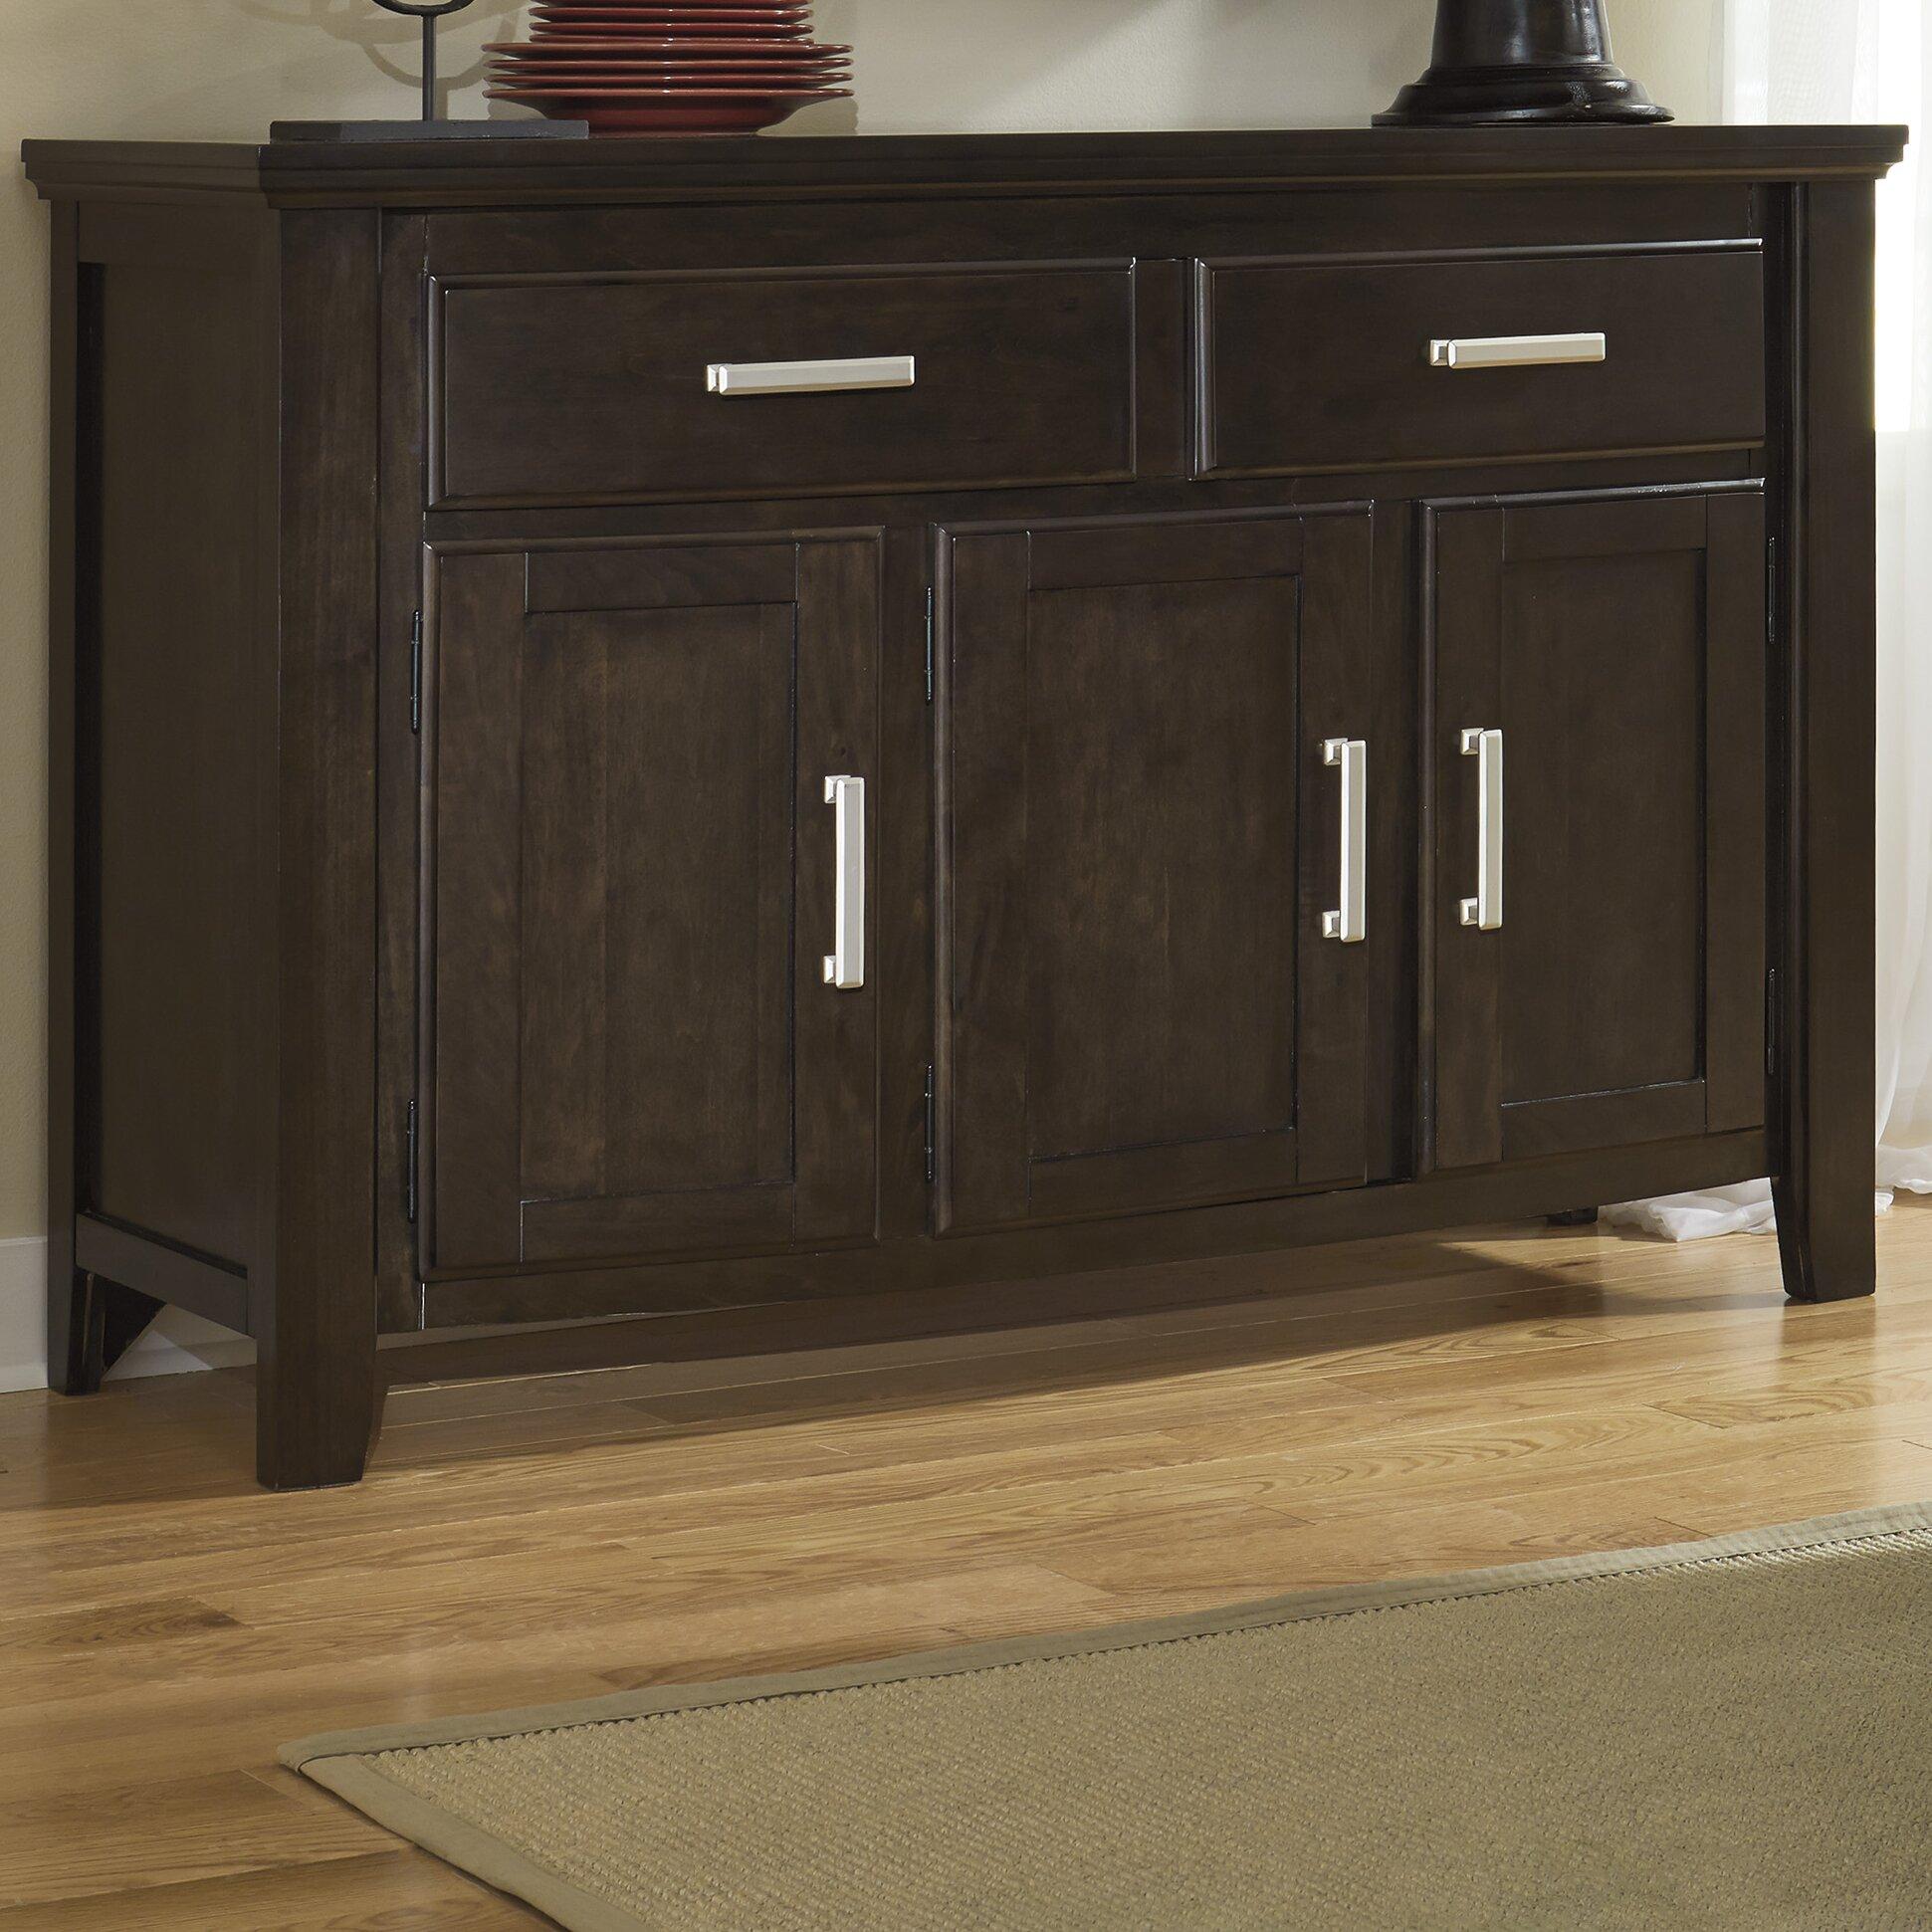 Signature Design By Ashley Lanquist Dining Room Sideboard Reviews Wayfair